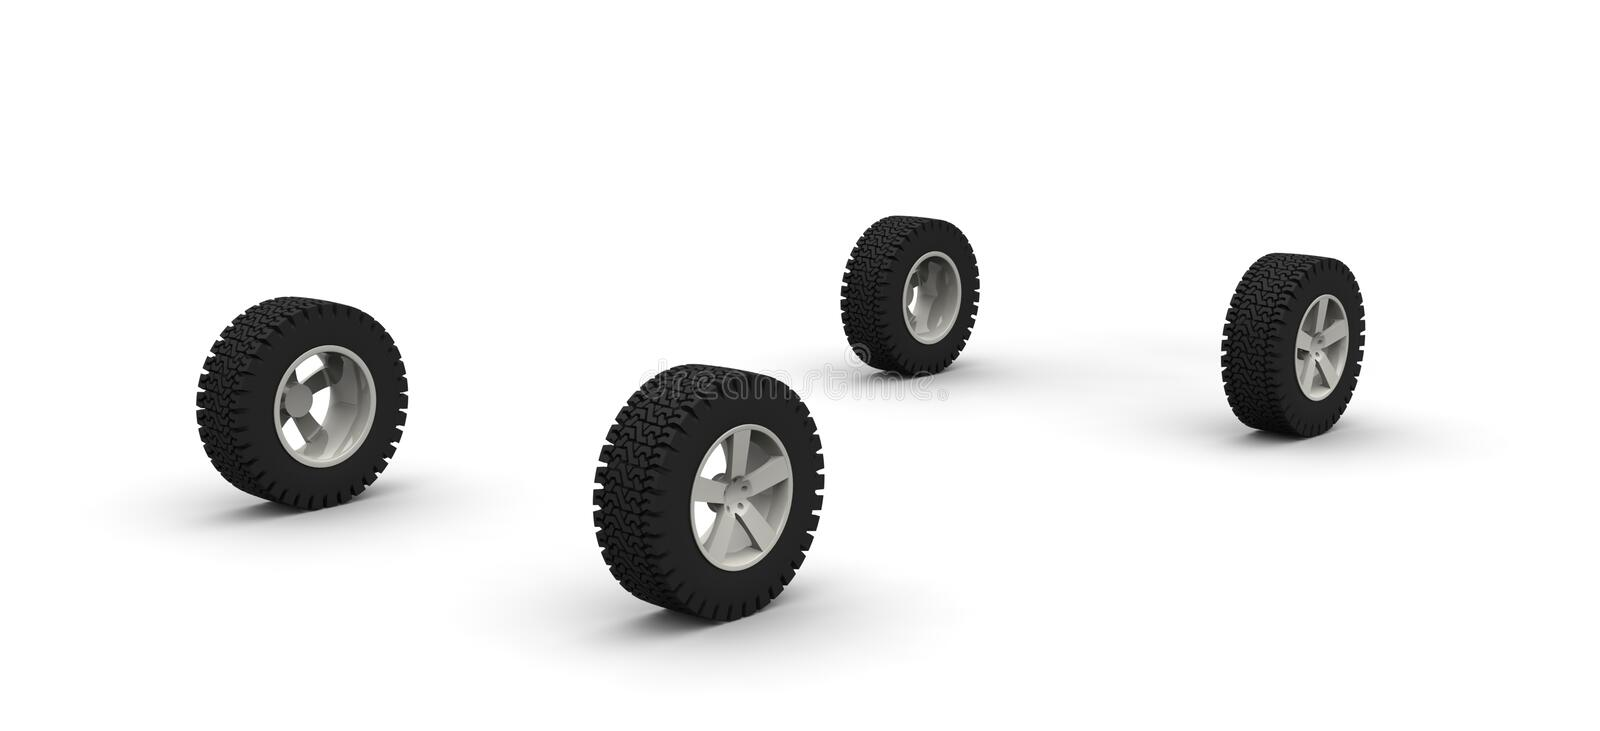 Four new off-road car wheels royalty free stock photo